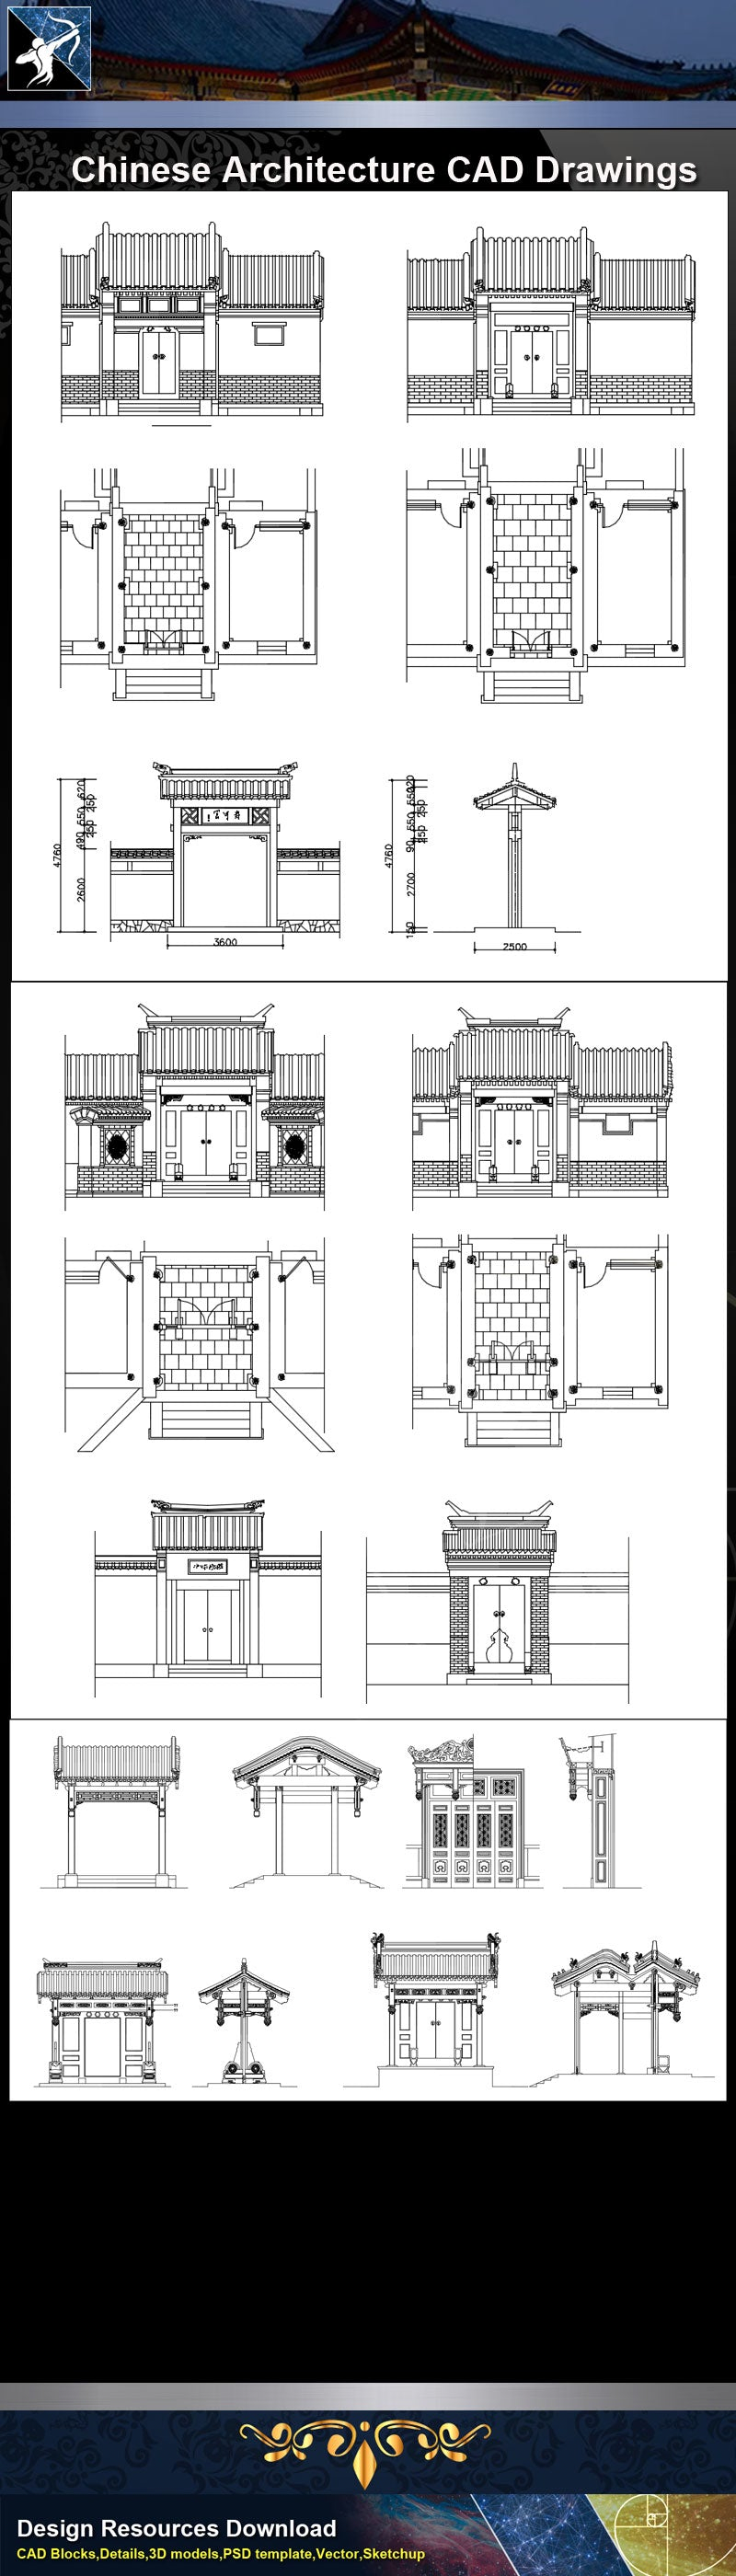 ★Chinese Architecture CAD Drawings-Chinese Gate,Door Design